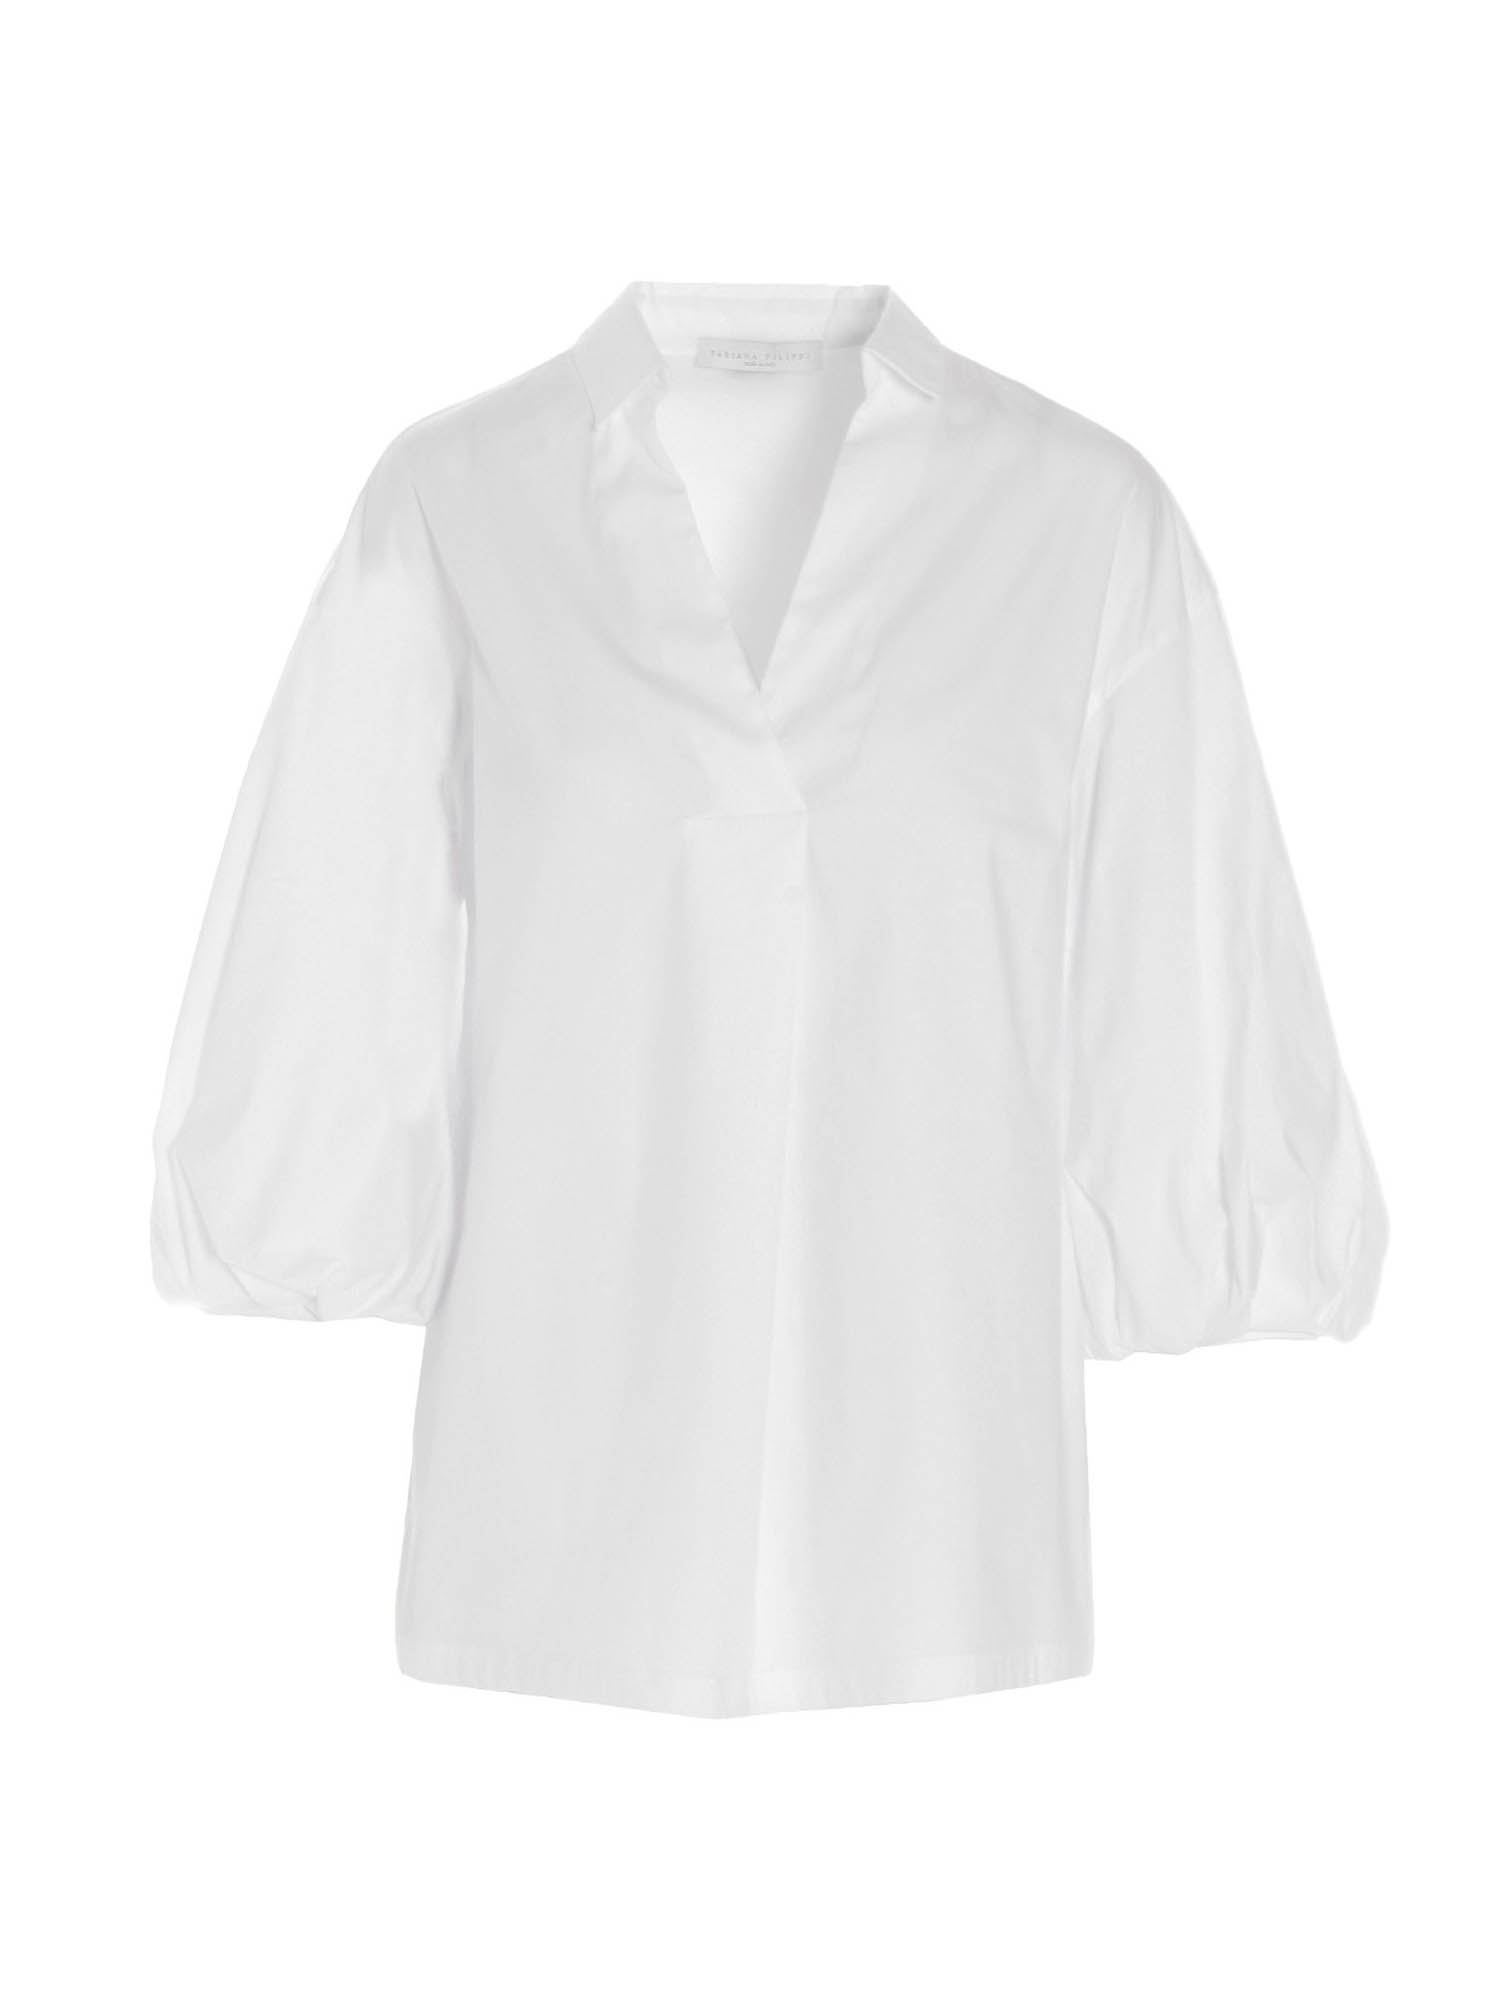 Fabiana Filippi THREE-QUARTER SLEEVE SHIRT IN WHITE